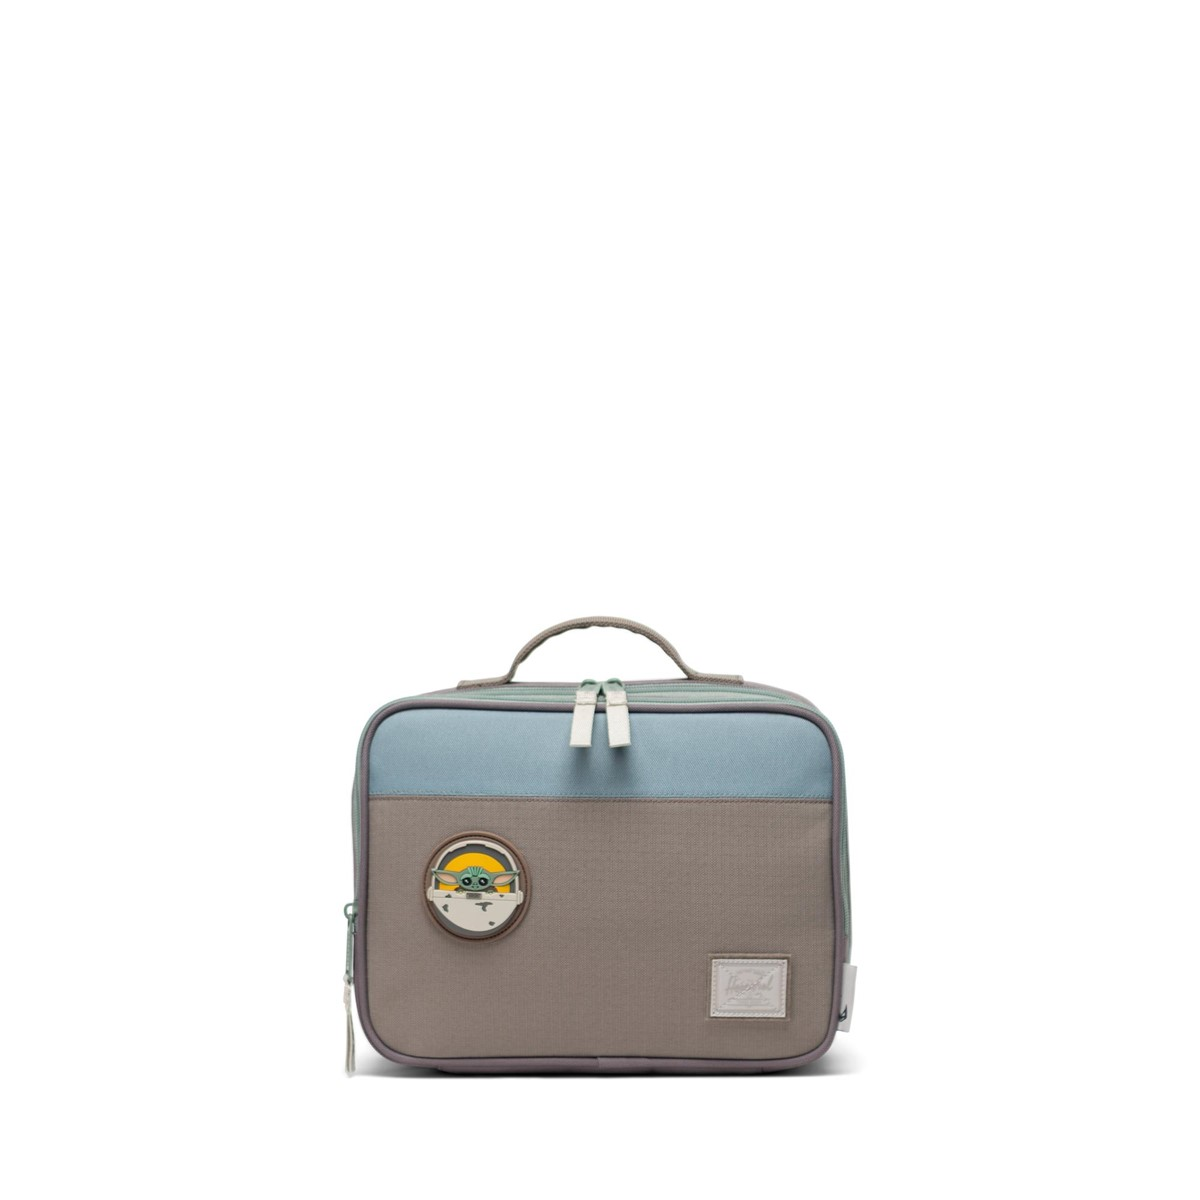 The Child Pop Quiz Lunch Box